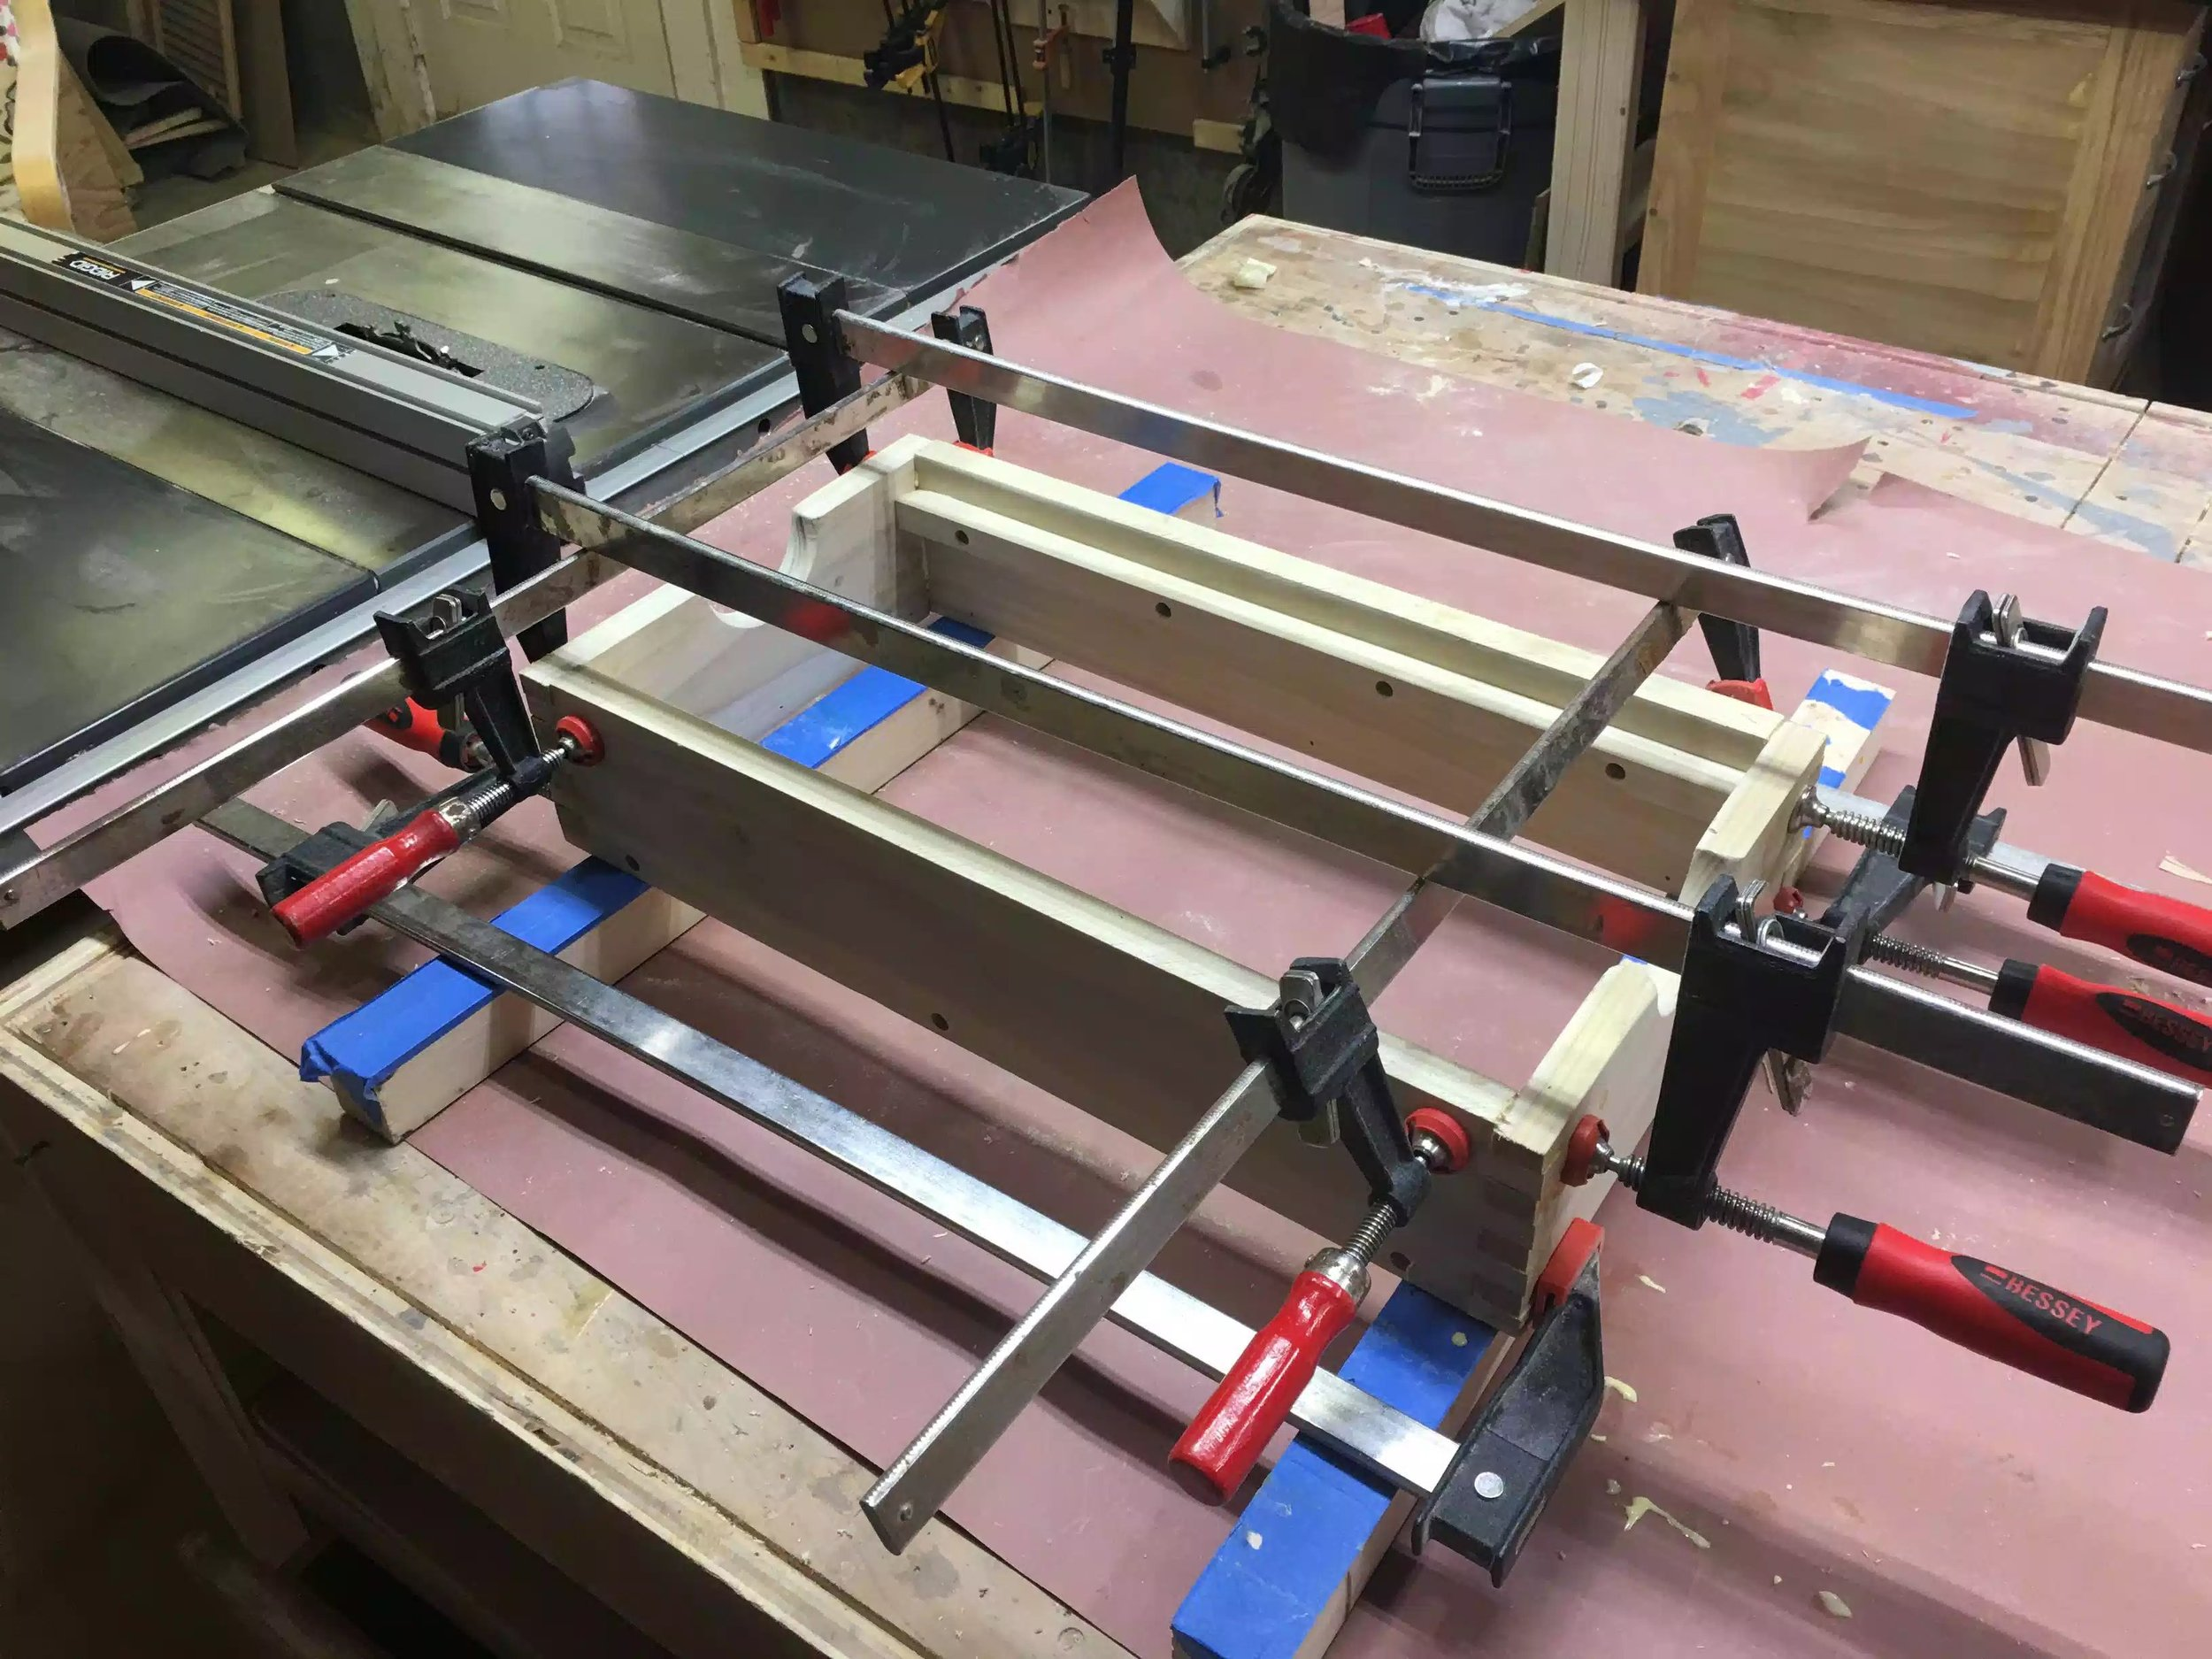 Here is another view of the glue-up